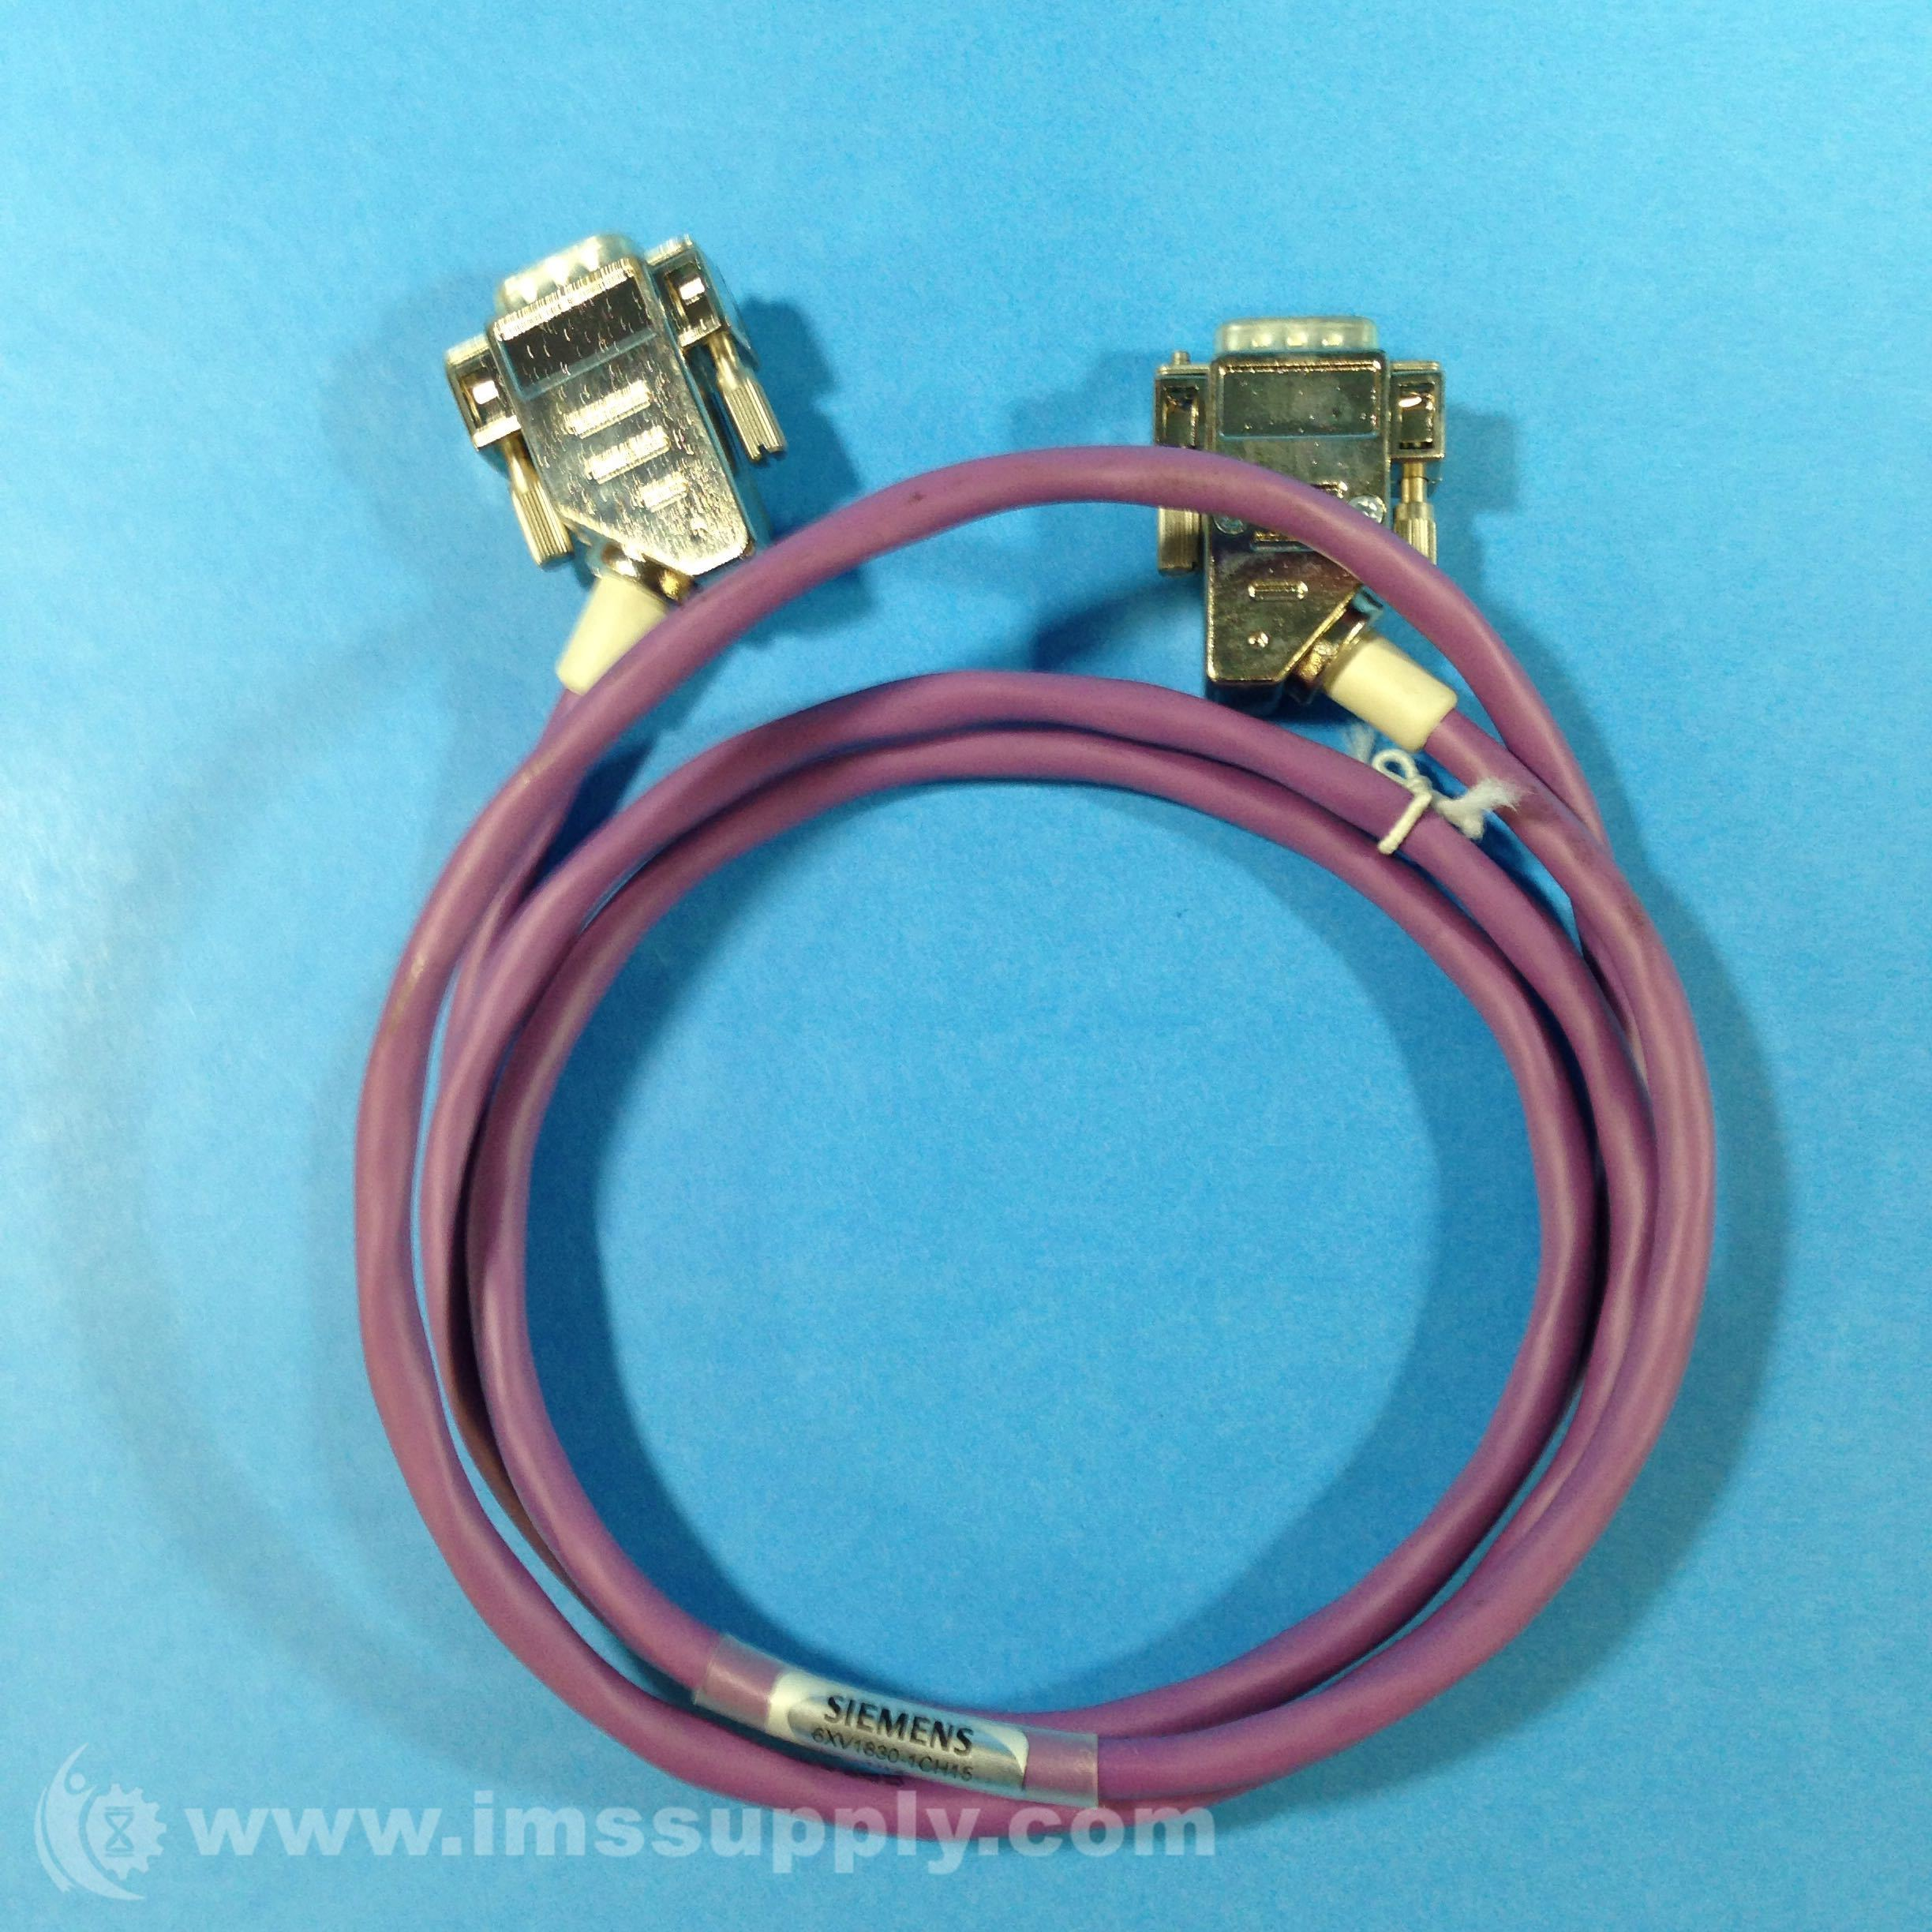 Siemens 6XV1830-1CH15 Cable Profibus 830-IT (2) 9 PIN 1.5 M - IMS Supply